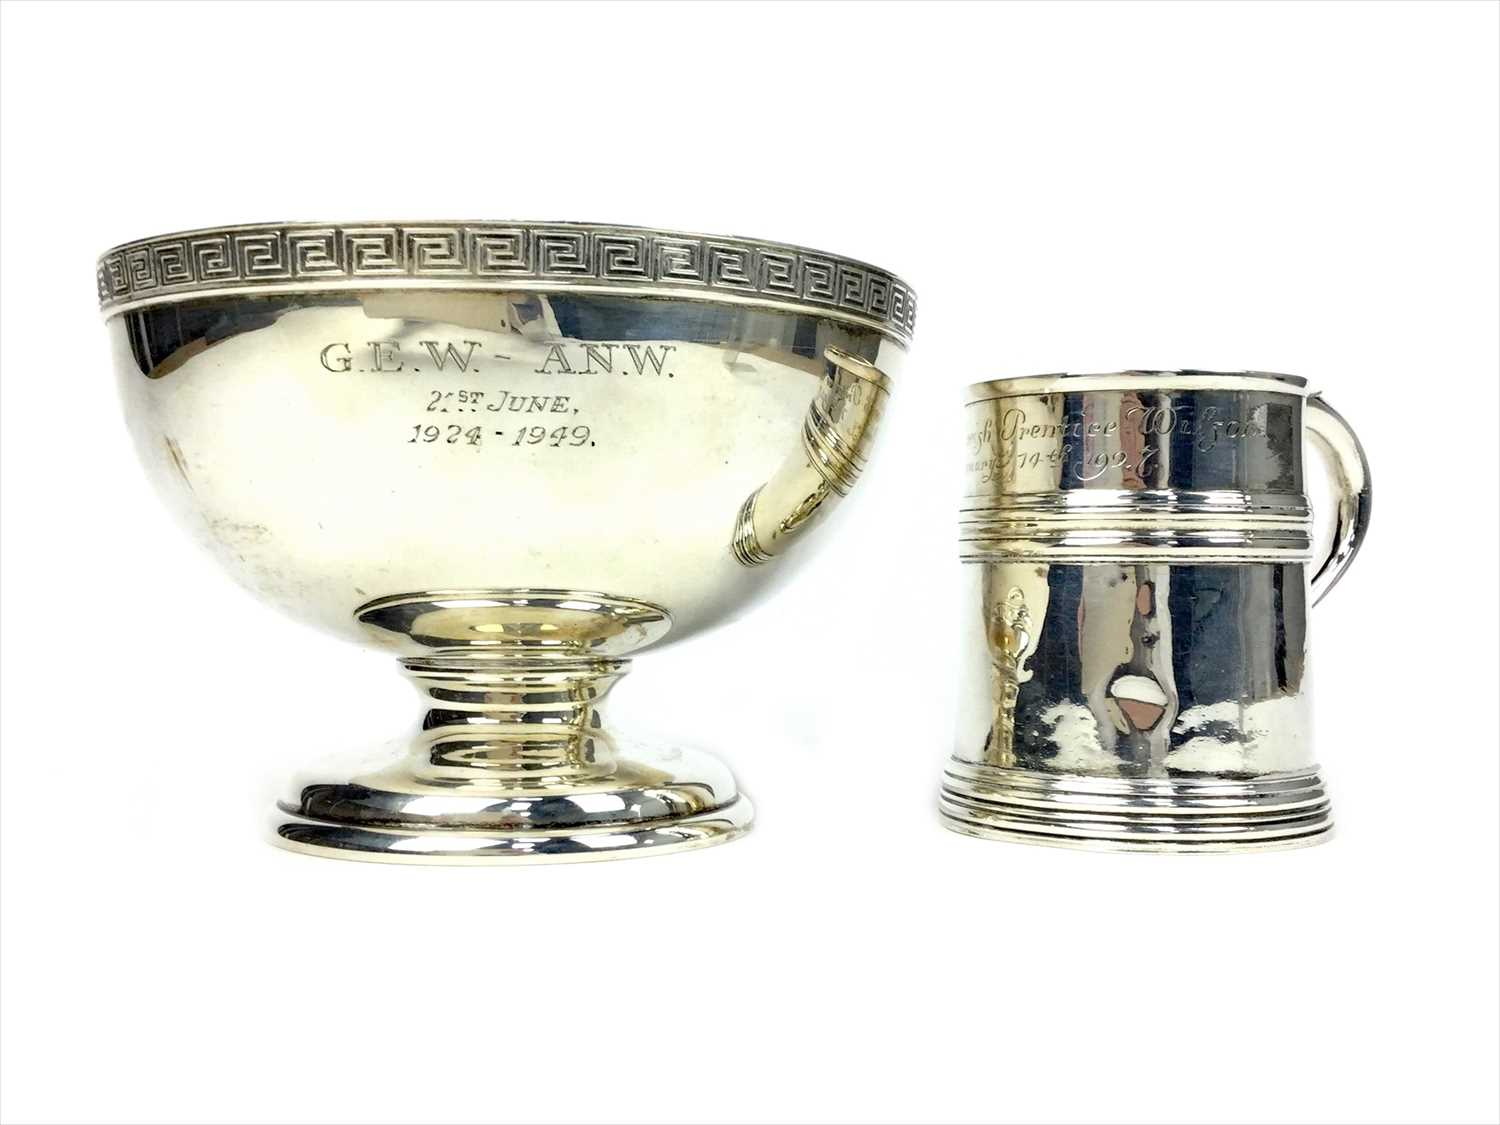 Lot 813-A GEORGE V SILVER PEDESTAL BOWL ALONG WITH A CHRISTENING MUG